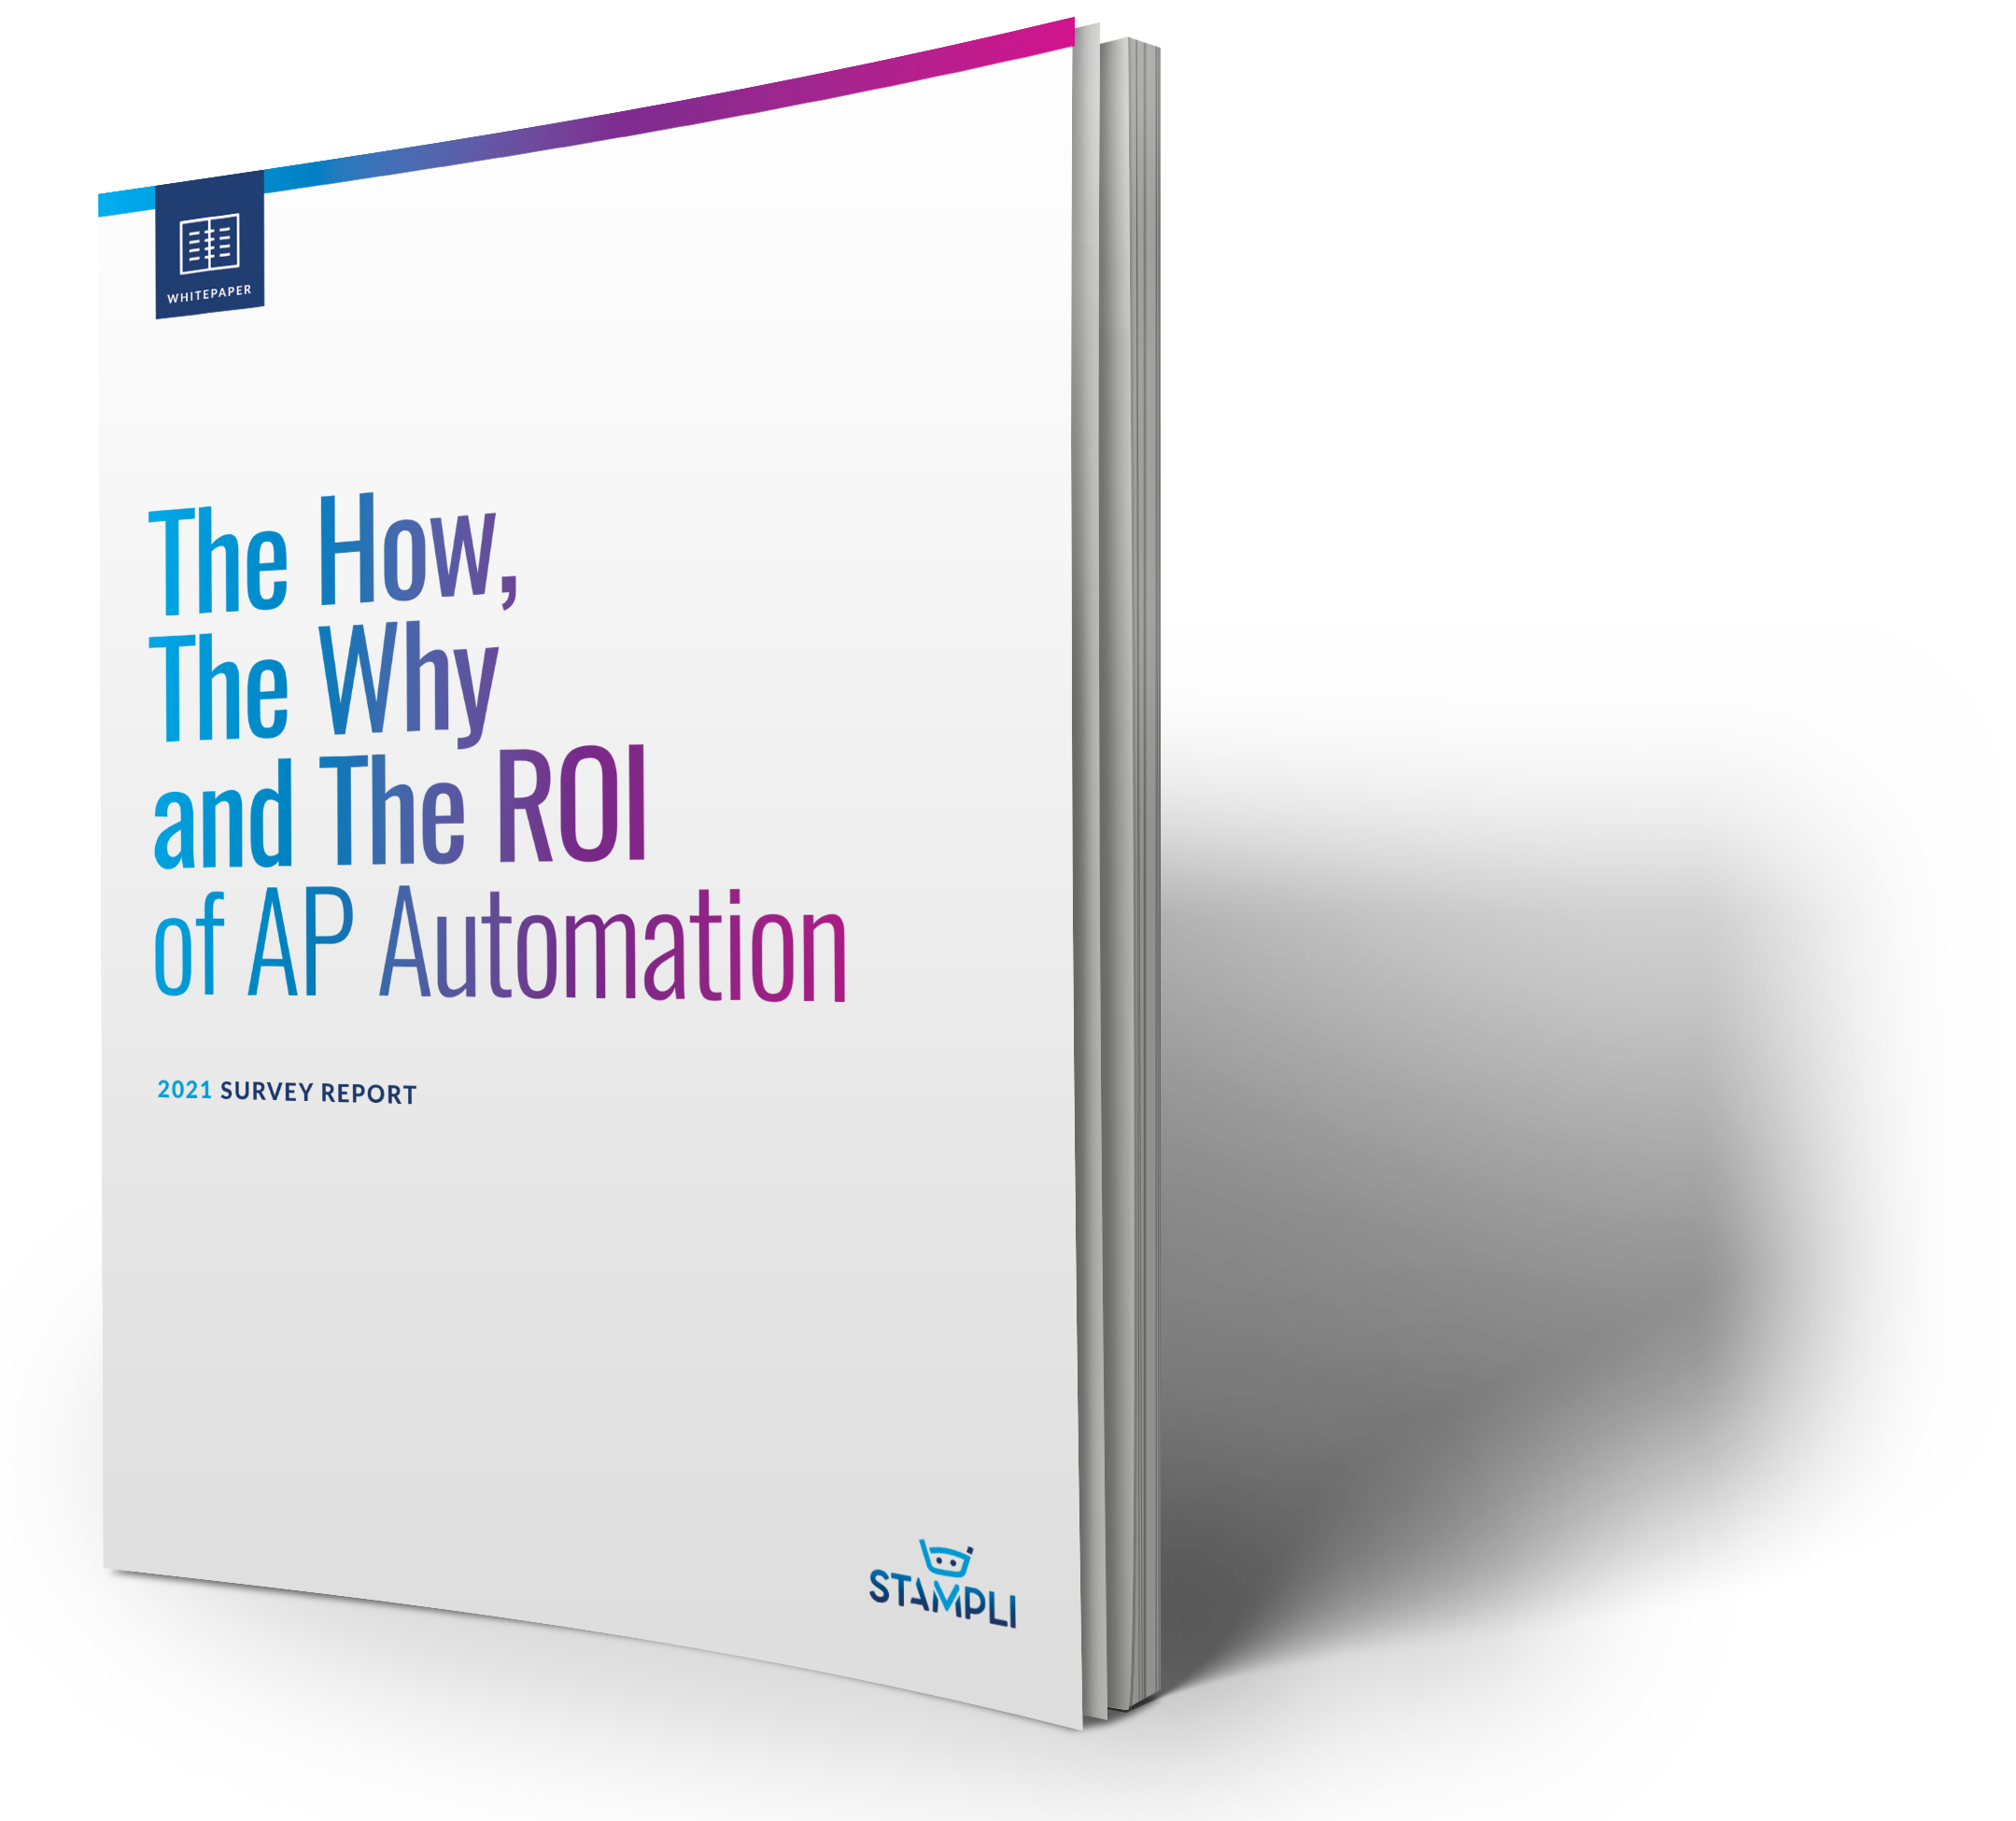 Whitepaper - The How, The Why & The ROI of AP Automation - cover image - cropepd2